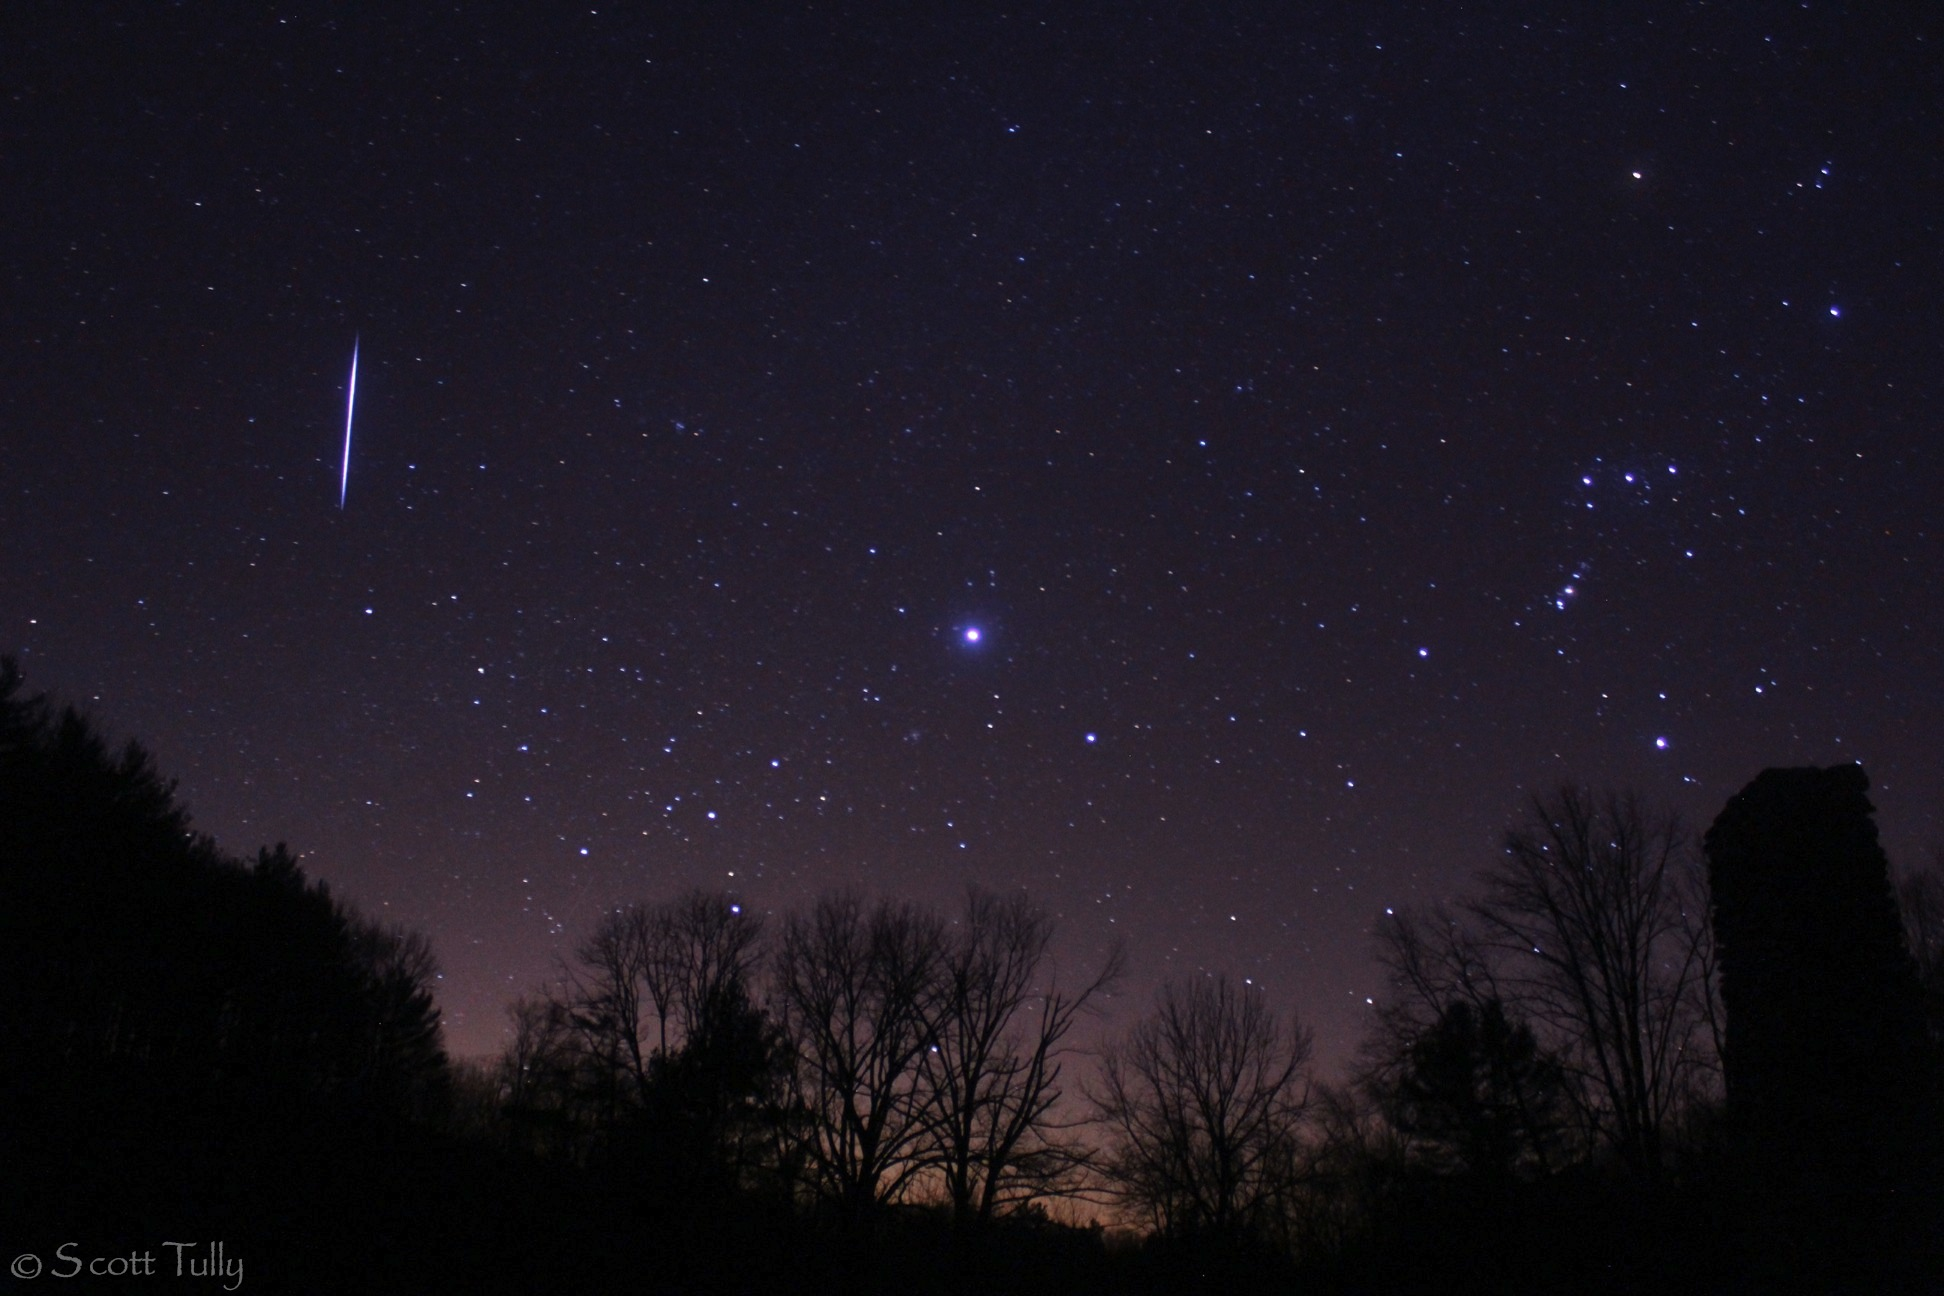 Leonid Meteor Shower 2012: Scott Tully